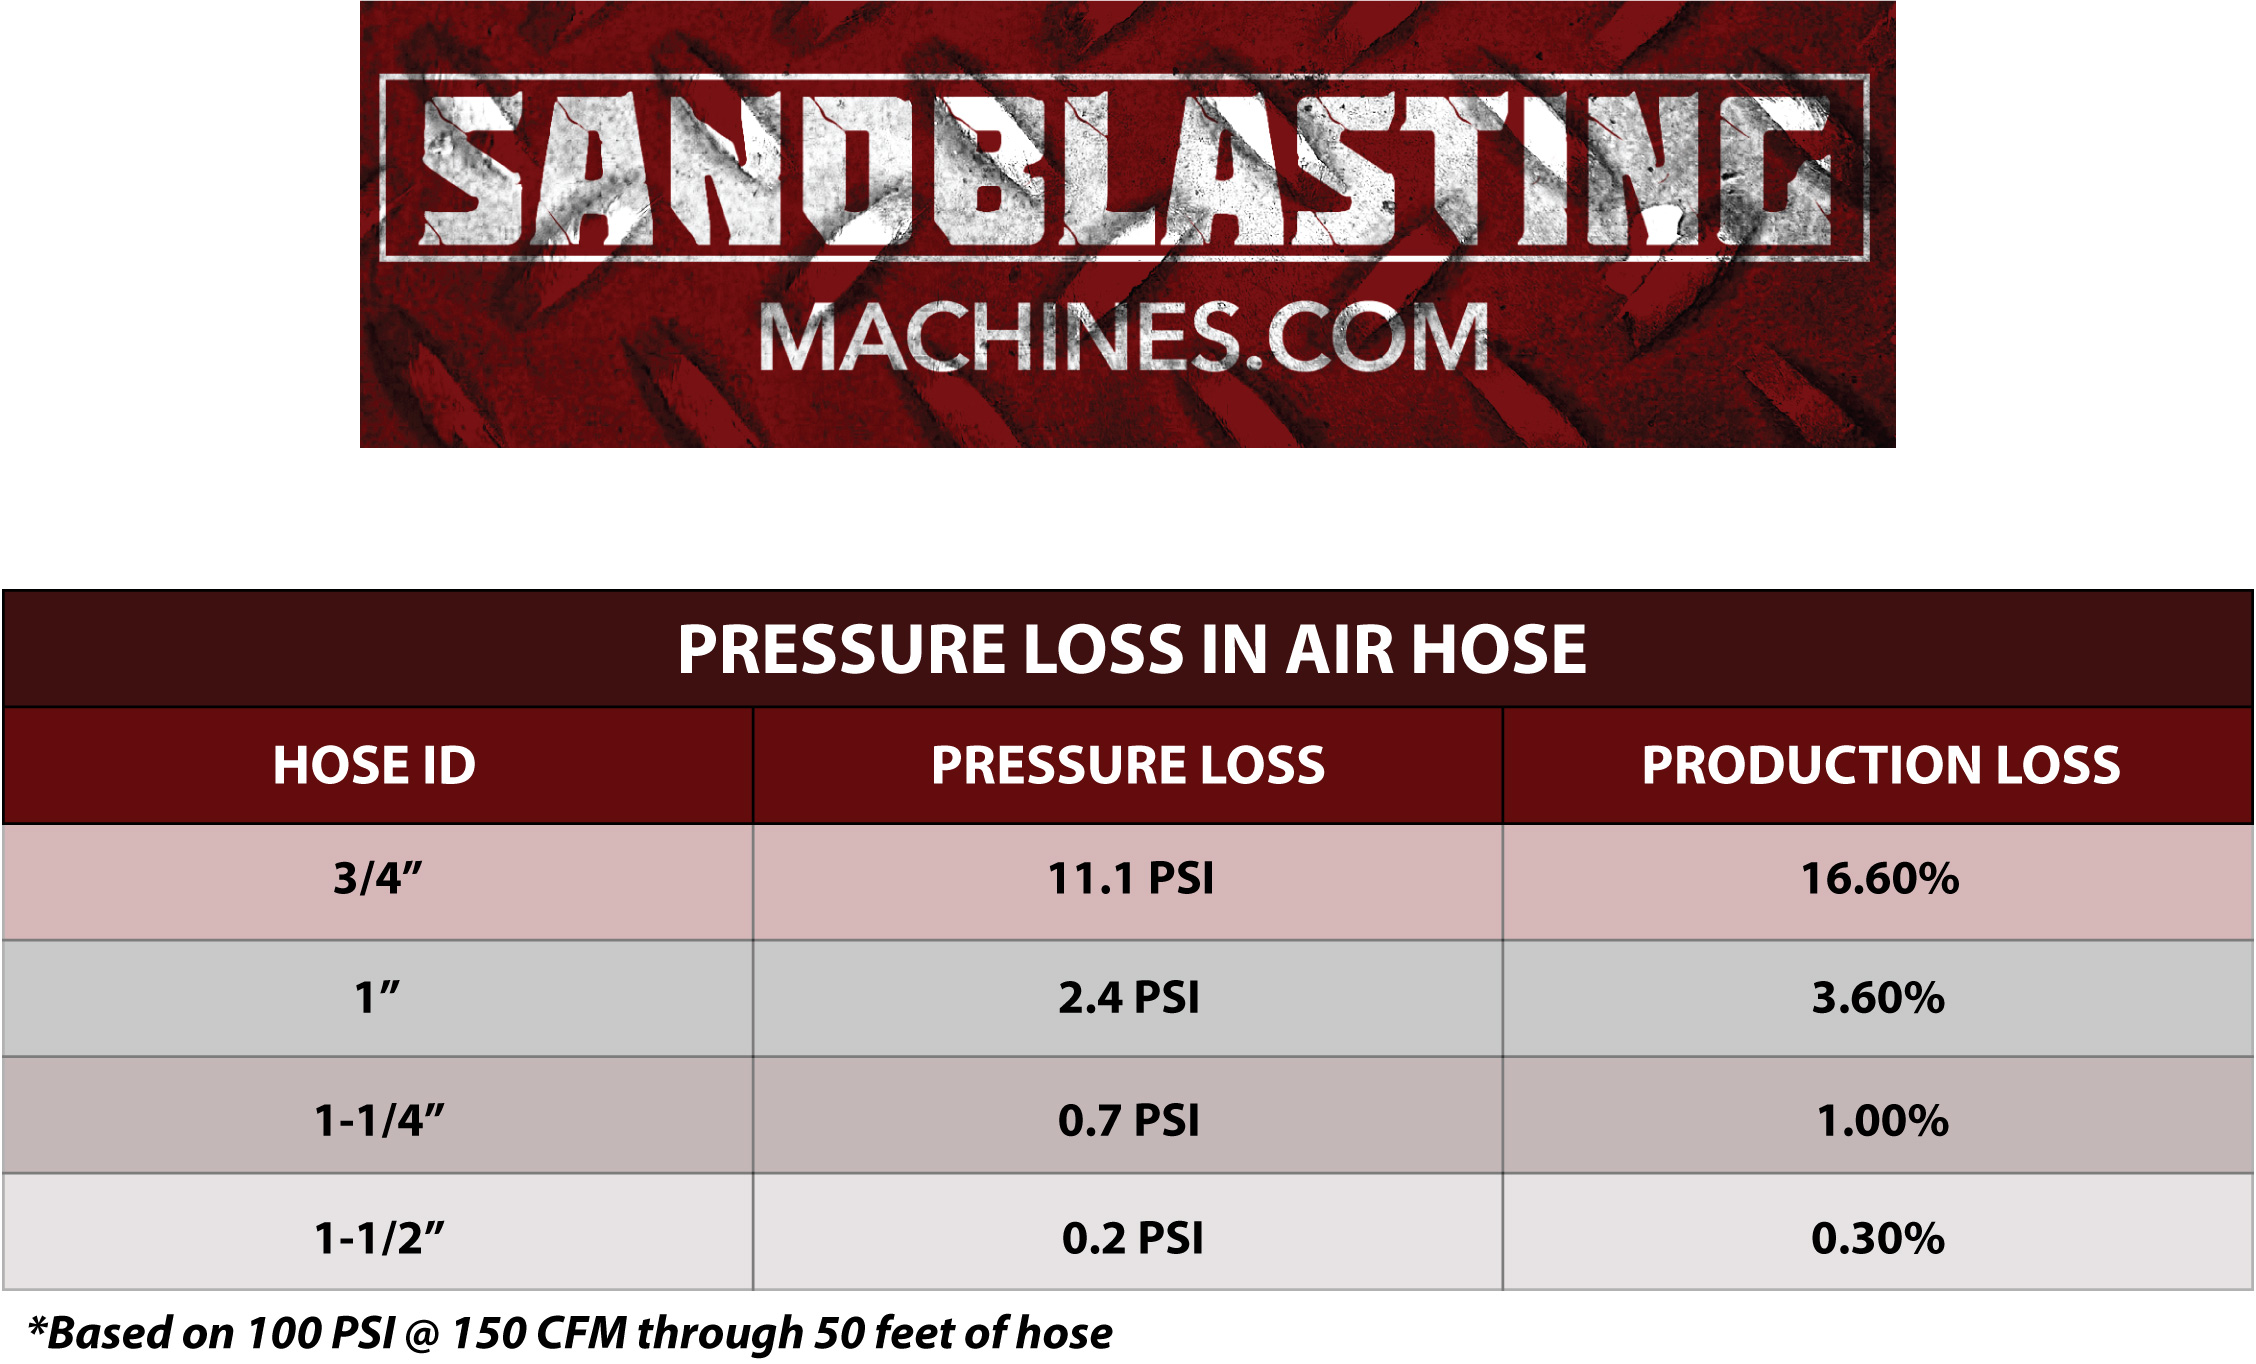 What Size Air Hose Do I Need for My Blast Machine